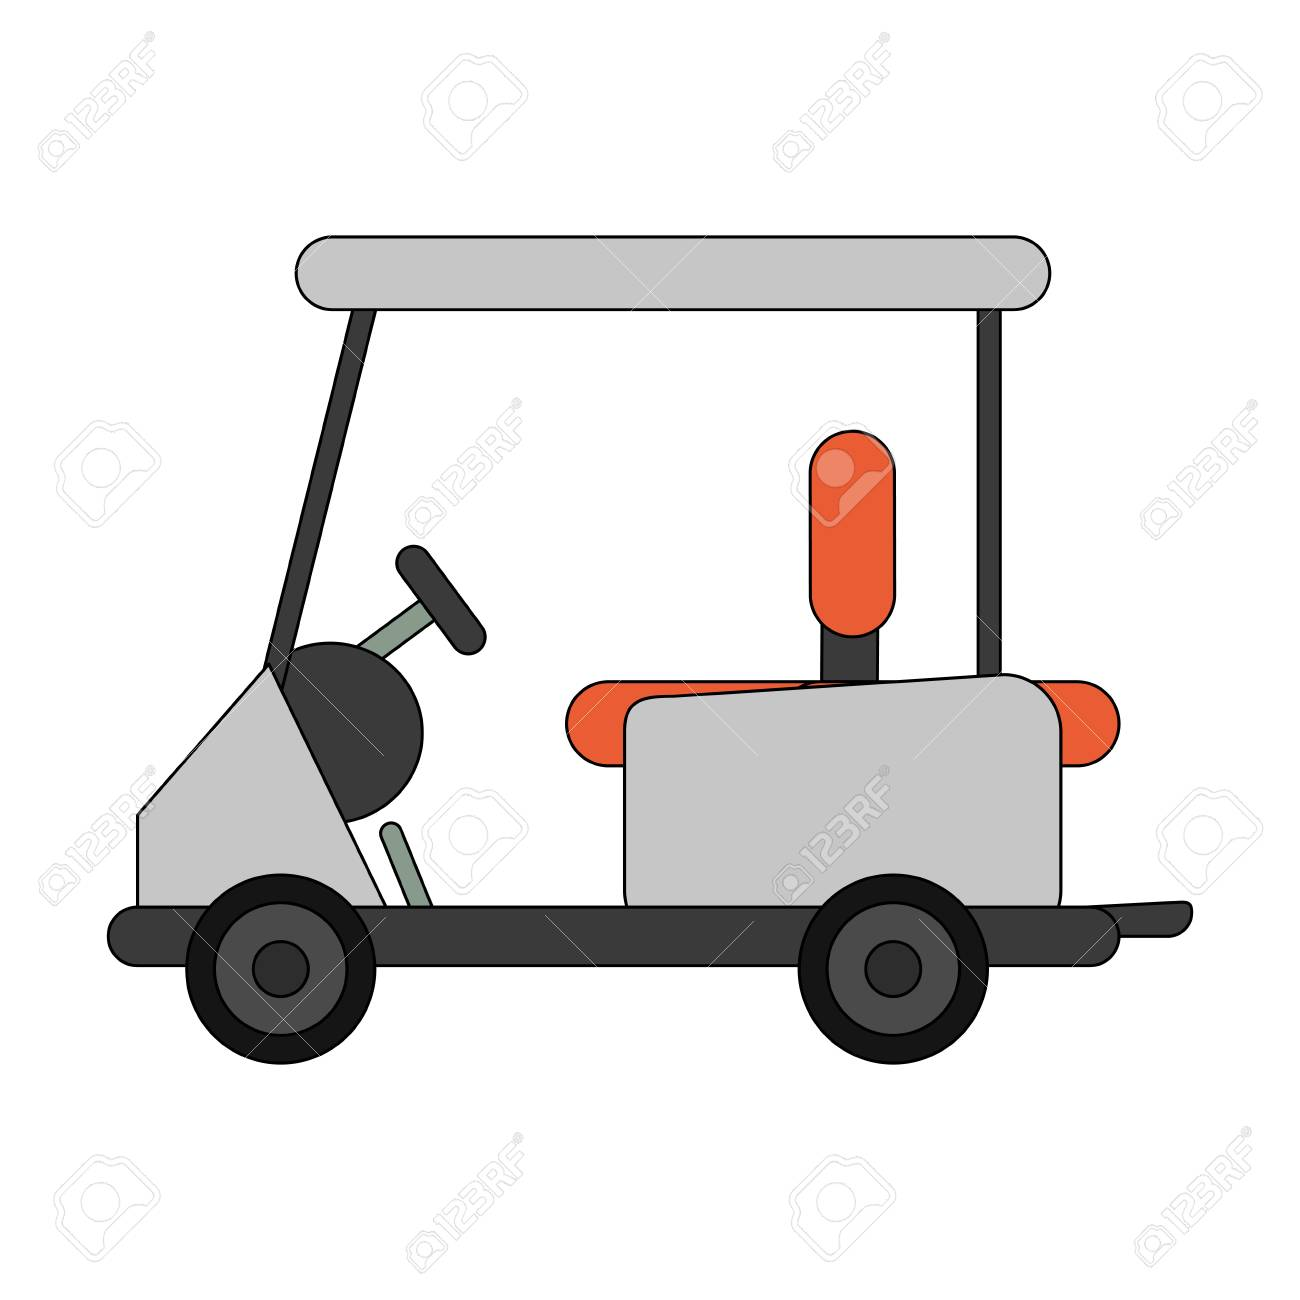 Color Image Cartoon Golf Cart Vehicle Vector Illustration Royalty Free Cliparts Vectors And Stock Illustration Image 77829654